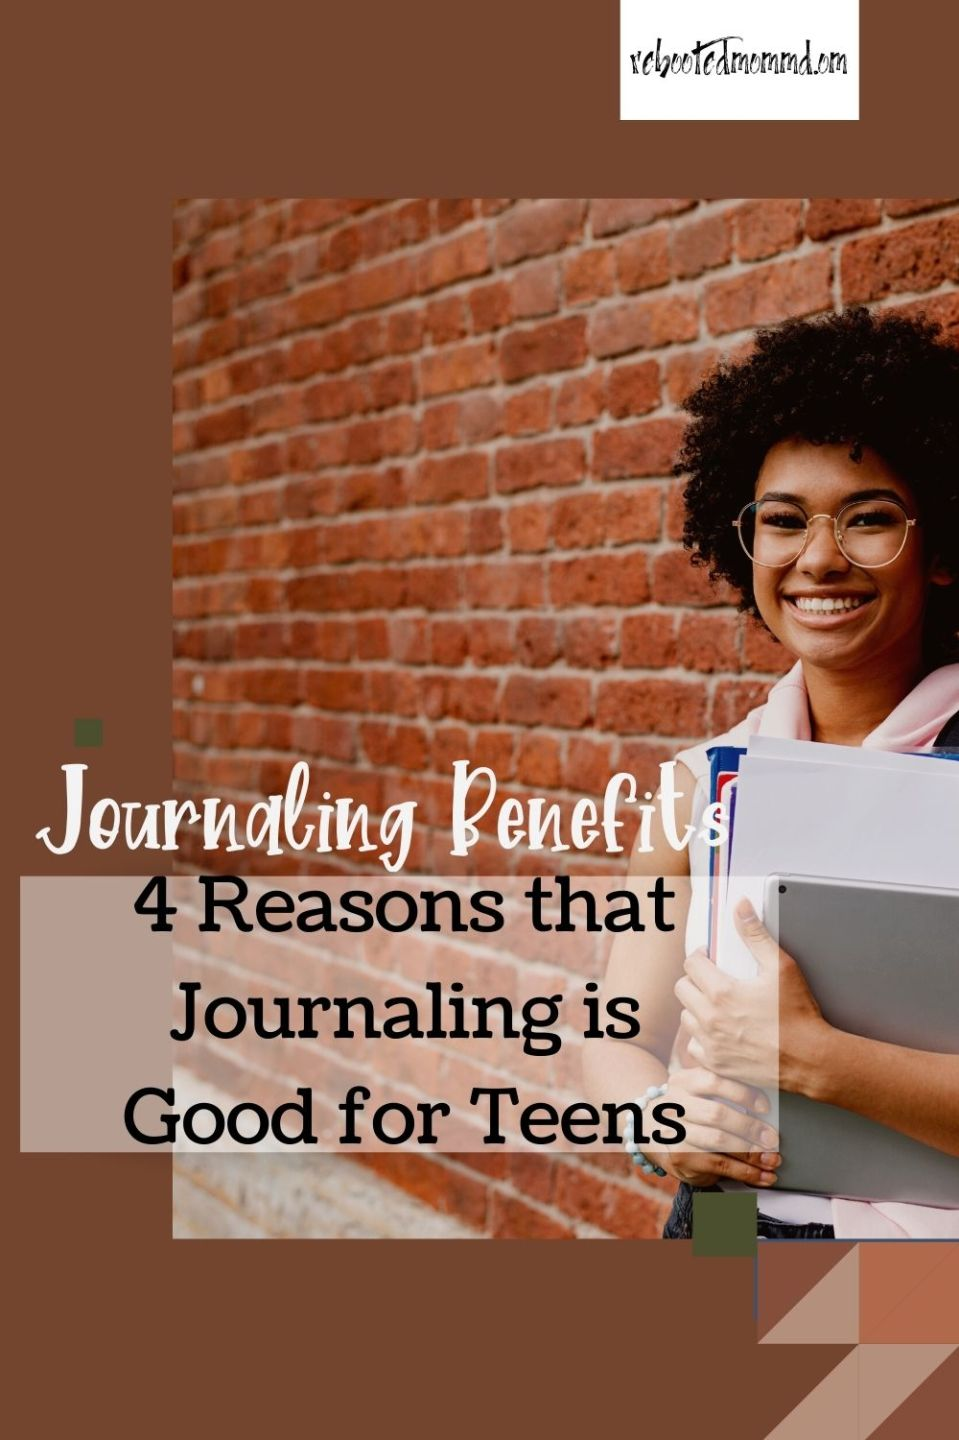 4 Reasons that Journaling is Good for Teens